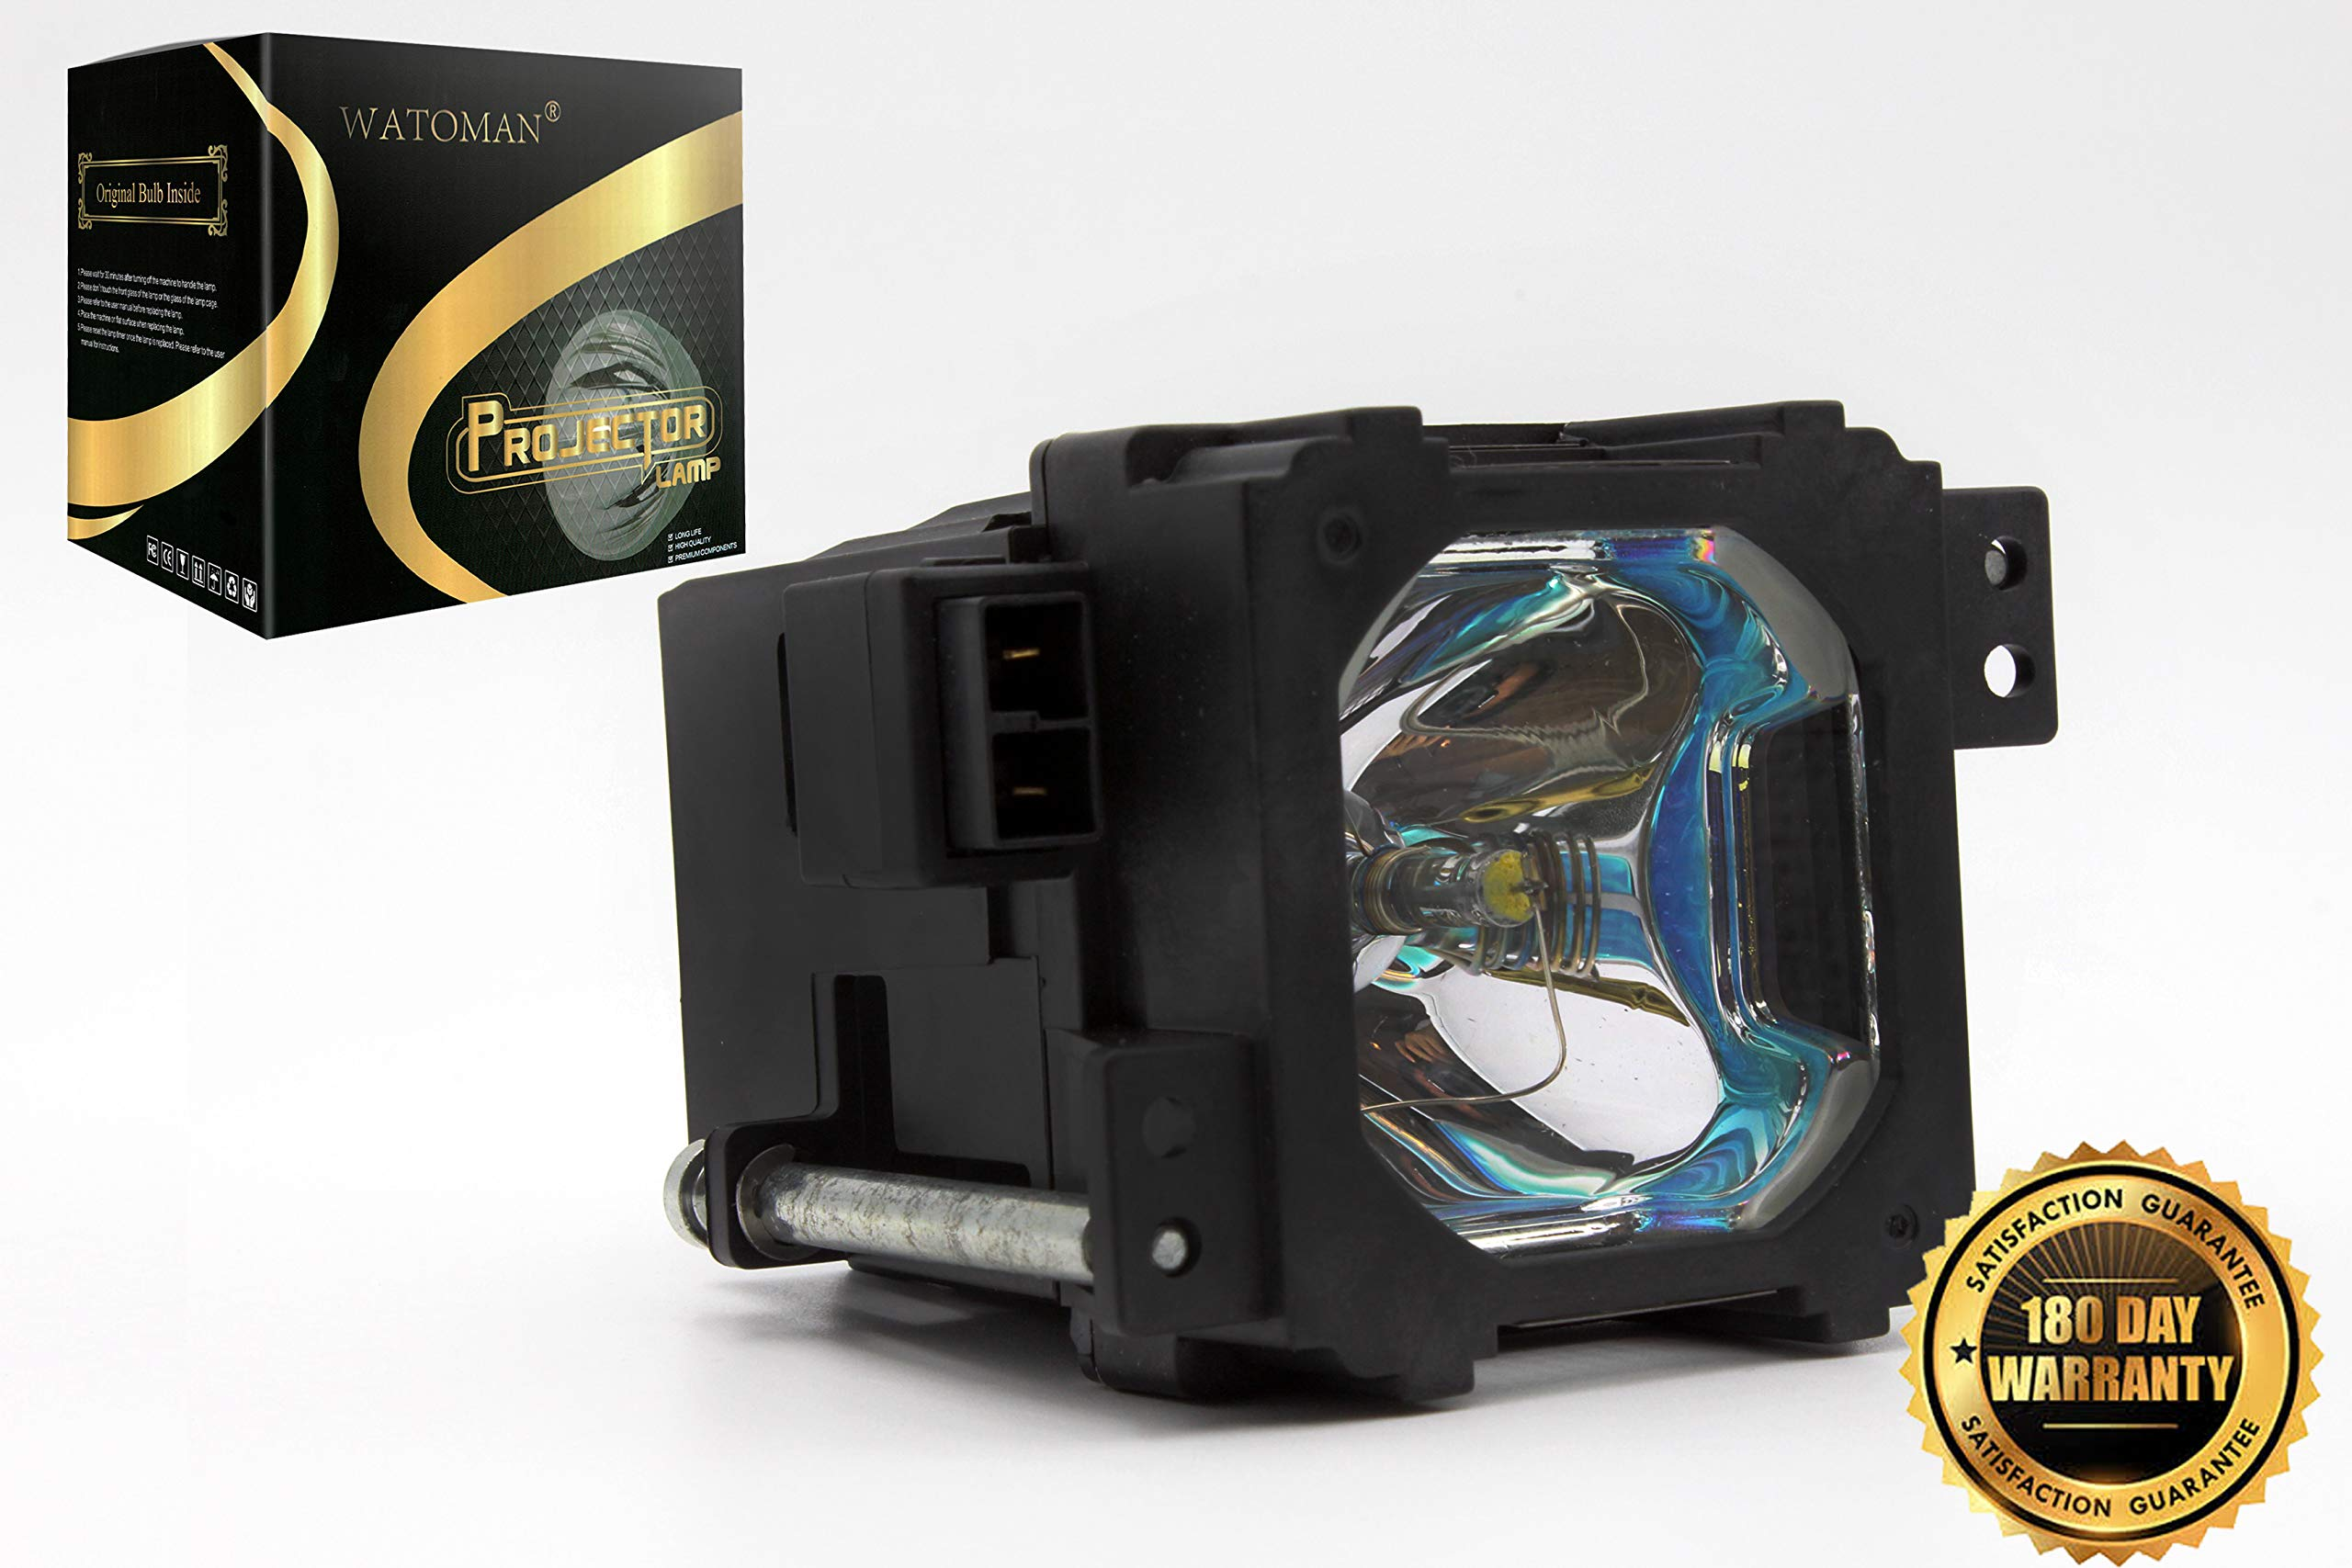 Watoman BHL-5009-S Assembly Original Projector Lamp with Complete Housing for JVC DLA-RS1 DLA-RS2 DLA-RS1U DLA-RS2U DLA-HD1 DLA-HD10 DLA-HD100 DLA-HD1WE DLA-RS1X DLA-VS2000 Projectors